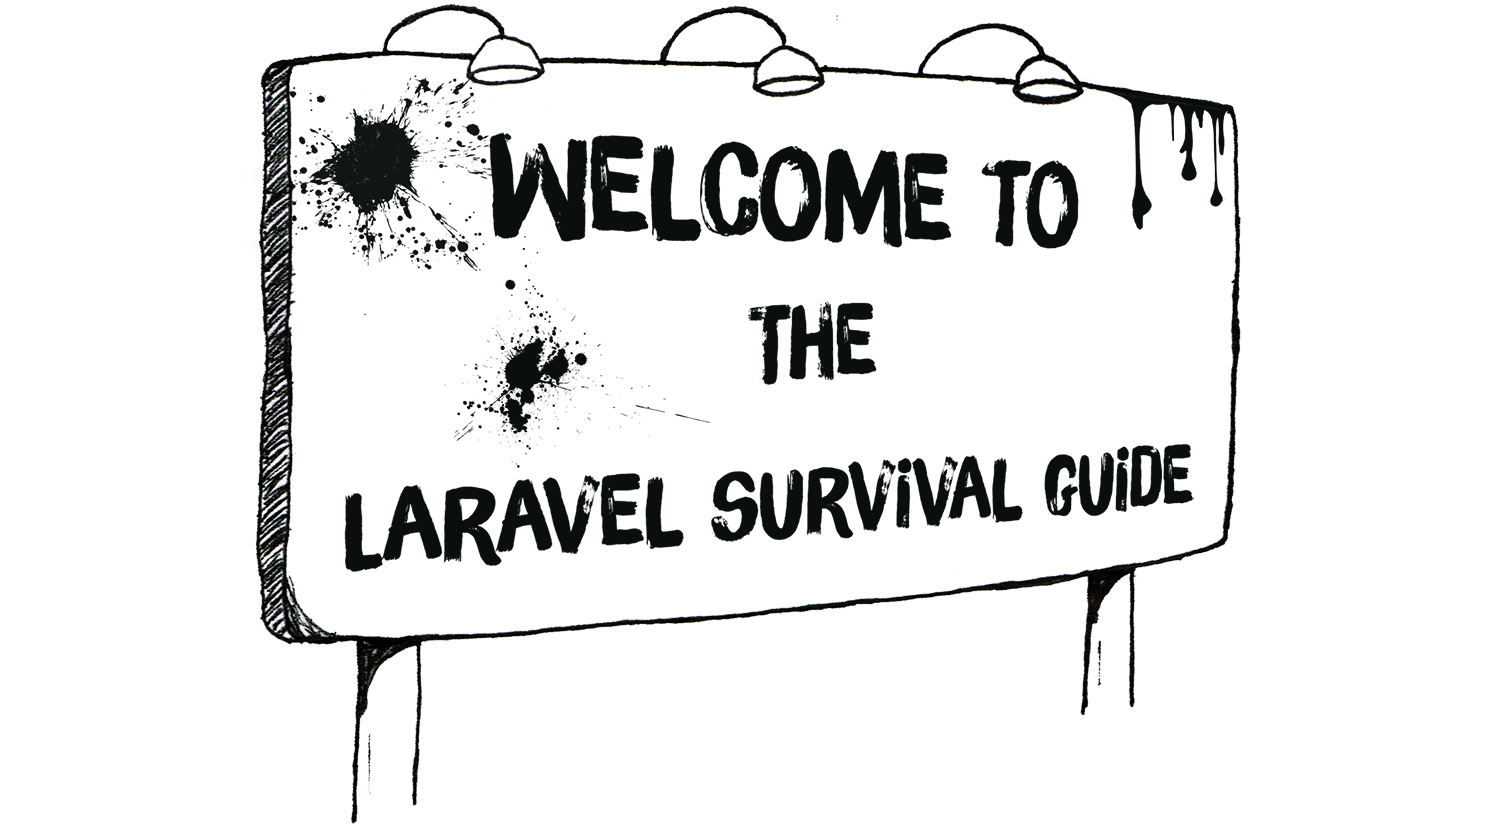 Welcome to the Laravel Guide